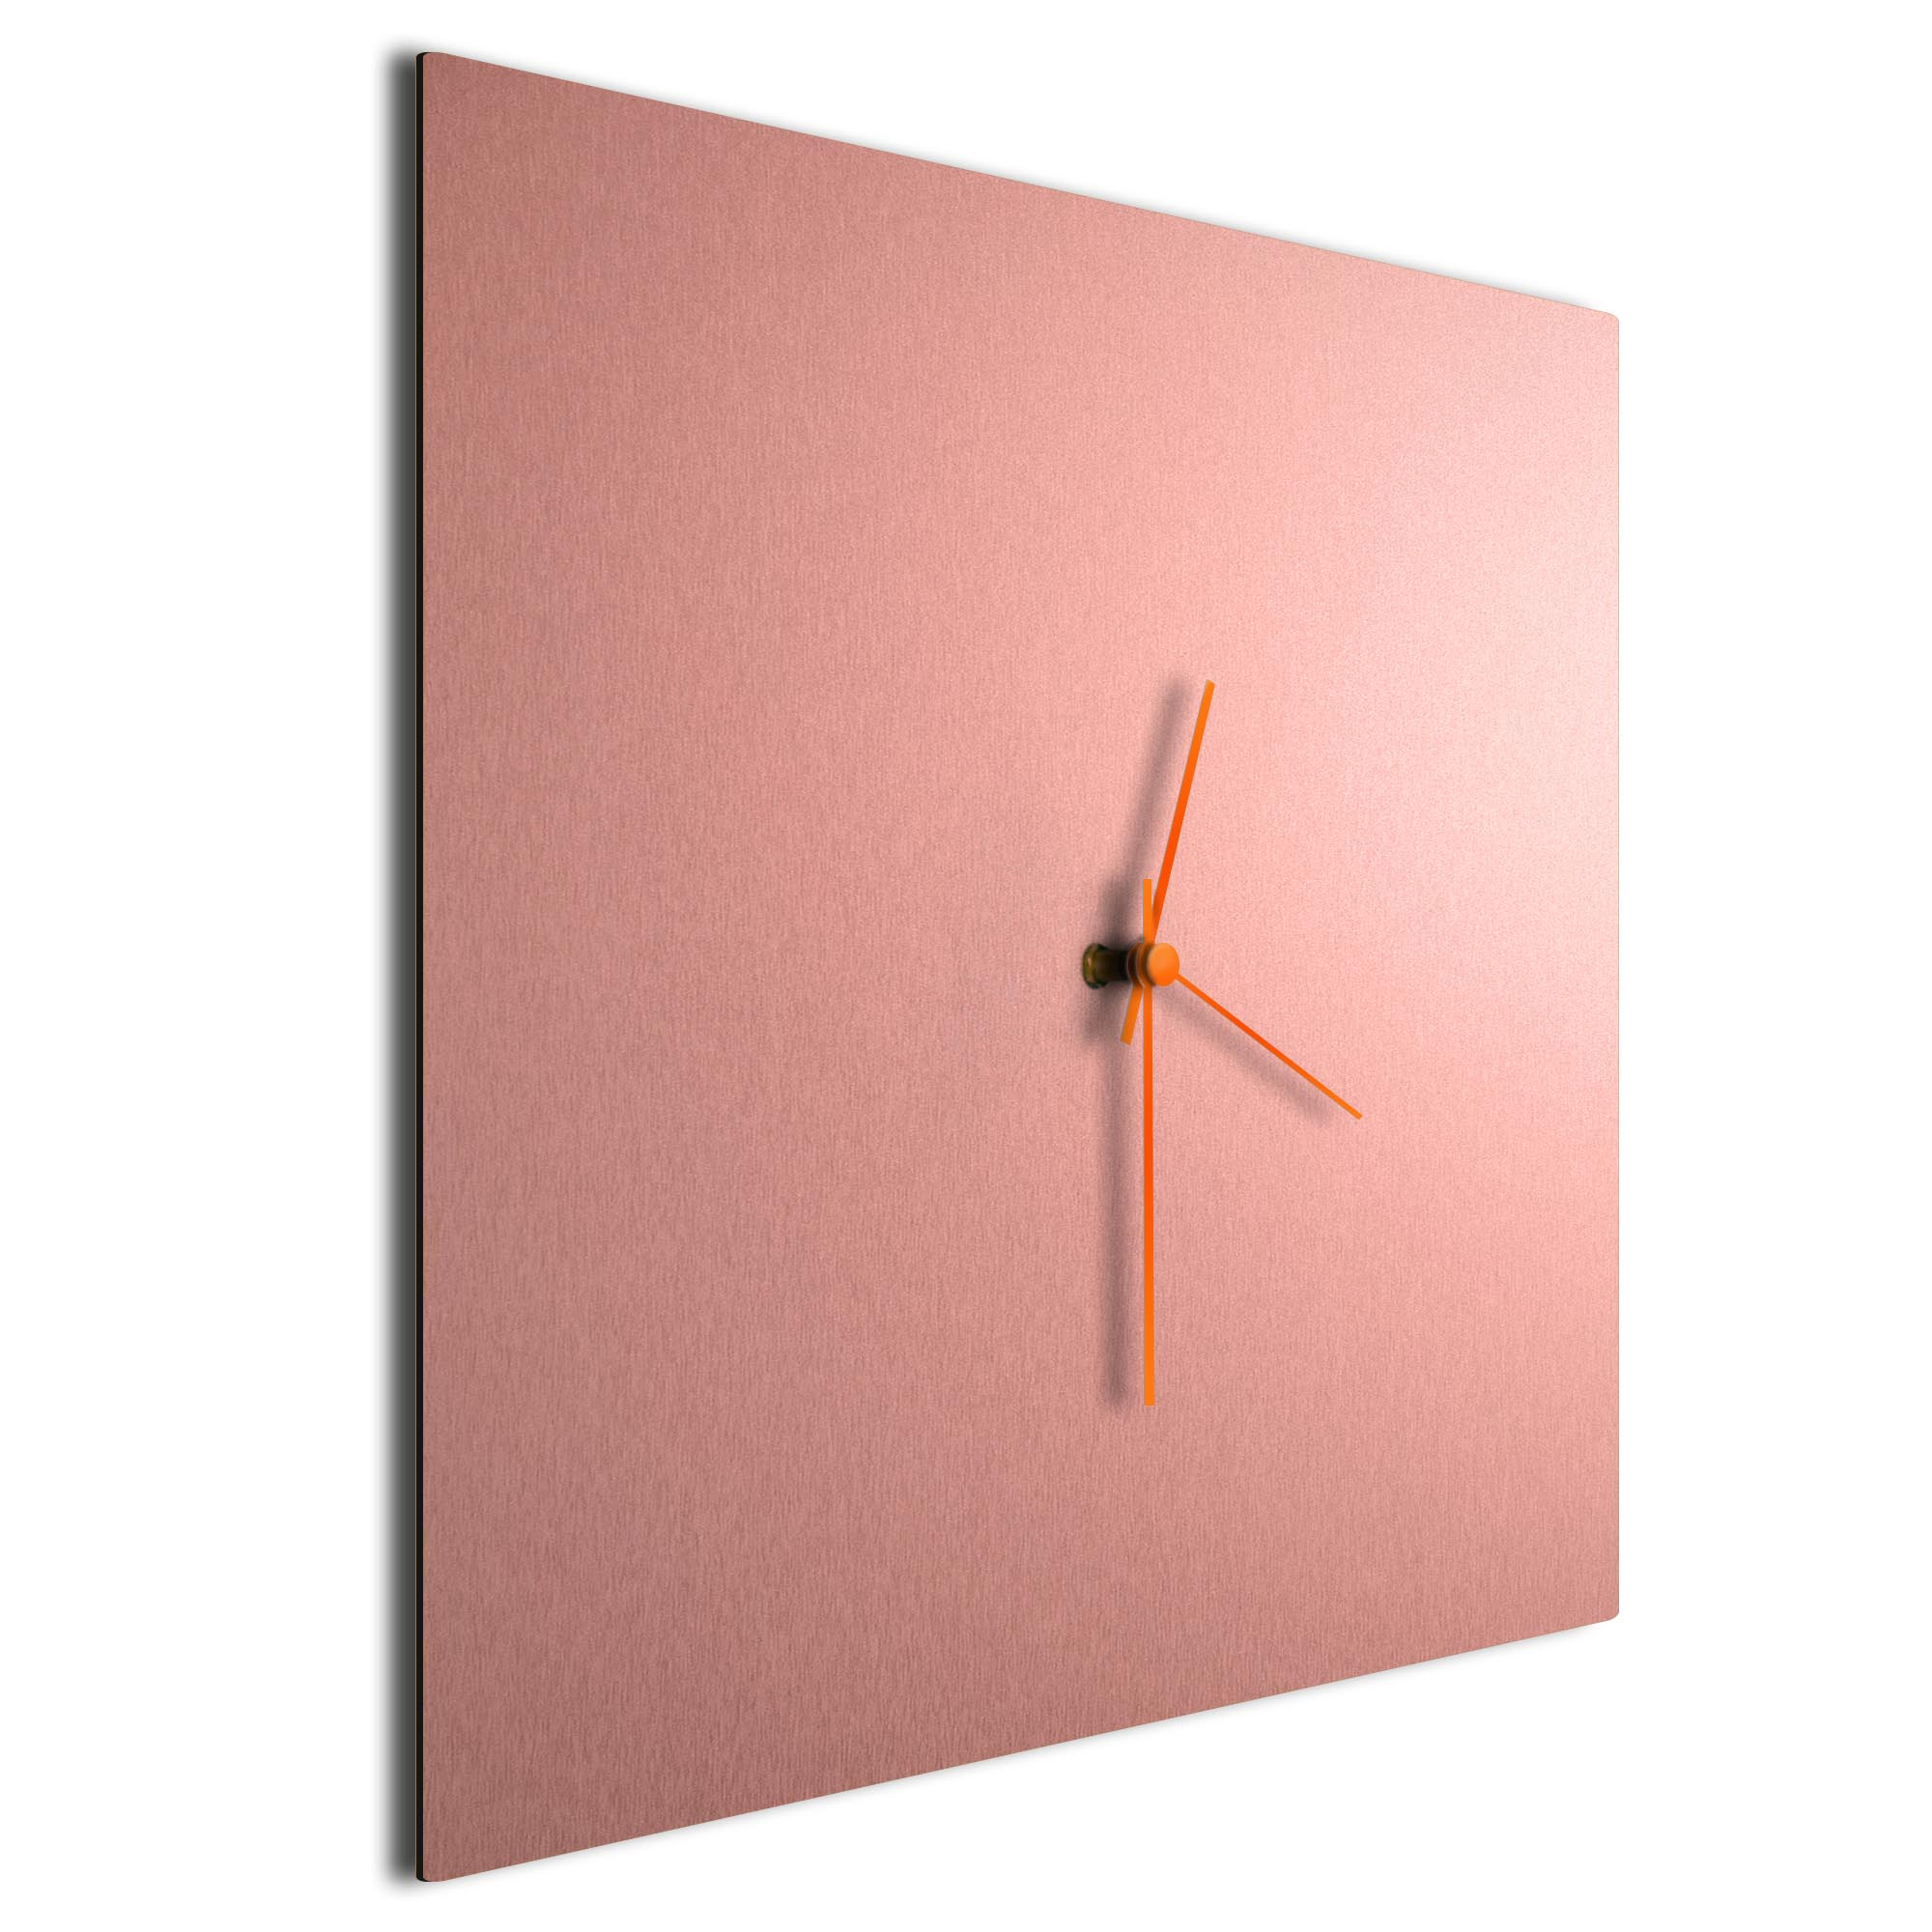 Coppersmith Square Clock Orange - Image 2